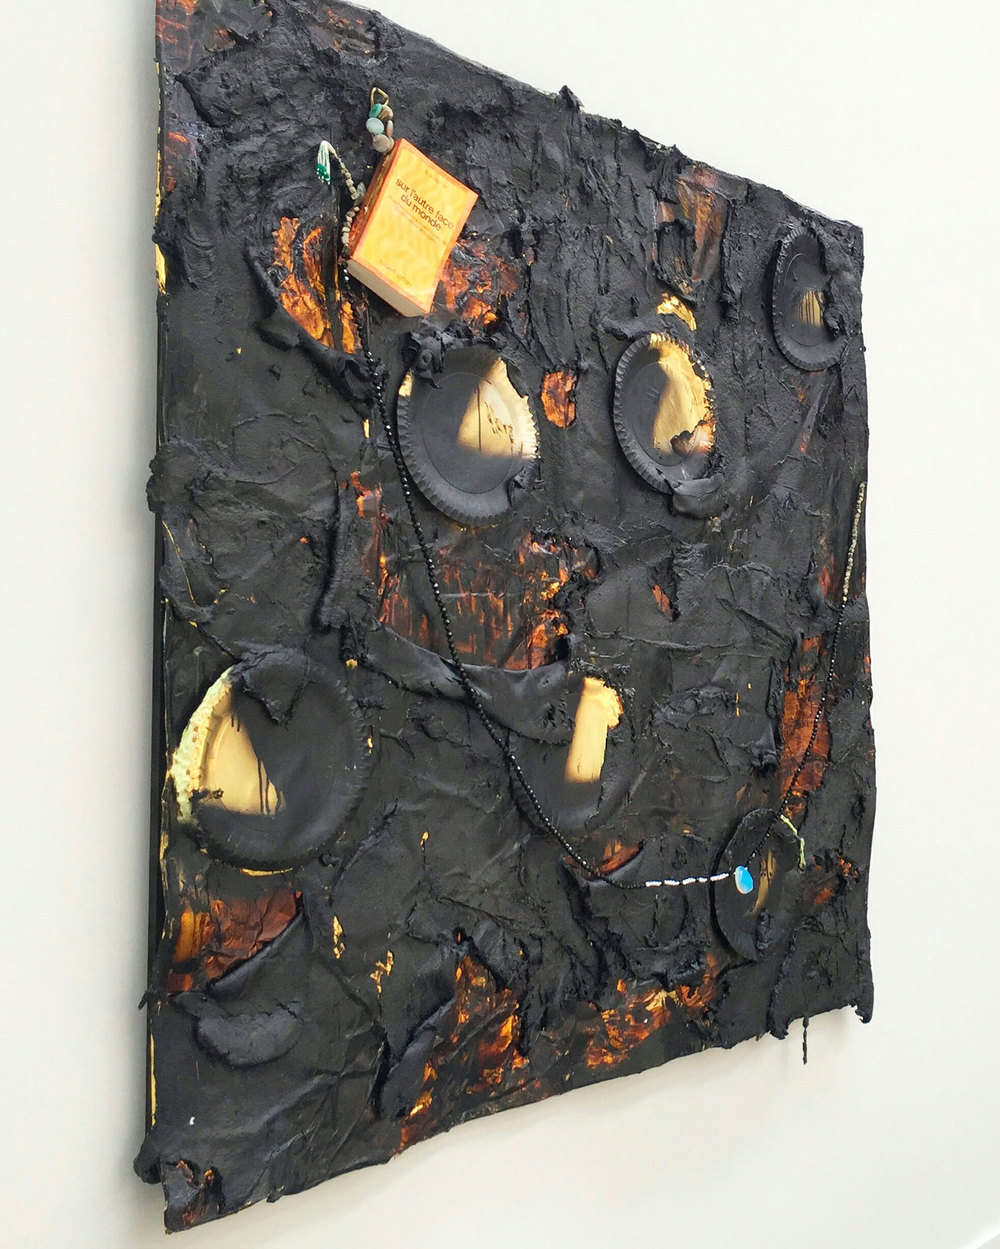 The City of Gold and Lepers, 3 lions in the desert 2016 | 170 X 164 CM Gesso, packaging laminated gold paper, laminated cardboard gold plate, Elastic Bitumen Mastic, speak black glass, synthetic sea sponge, stainless steel cable, Book. At Circle of Life ( Curated by: Carmit Blumensohn ), NordArt 2016, Büdelsdorf, Germany